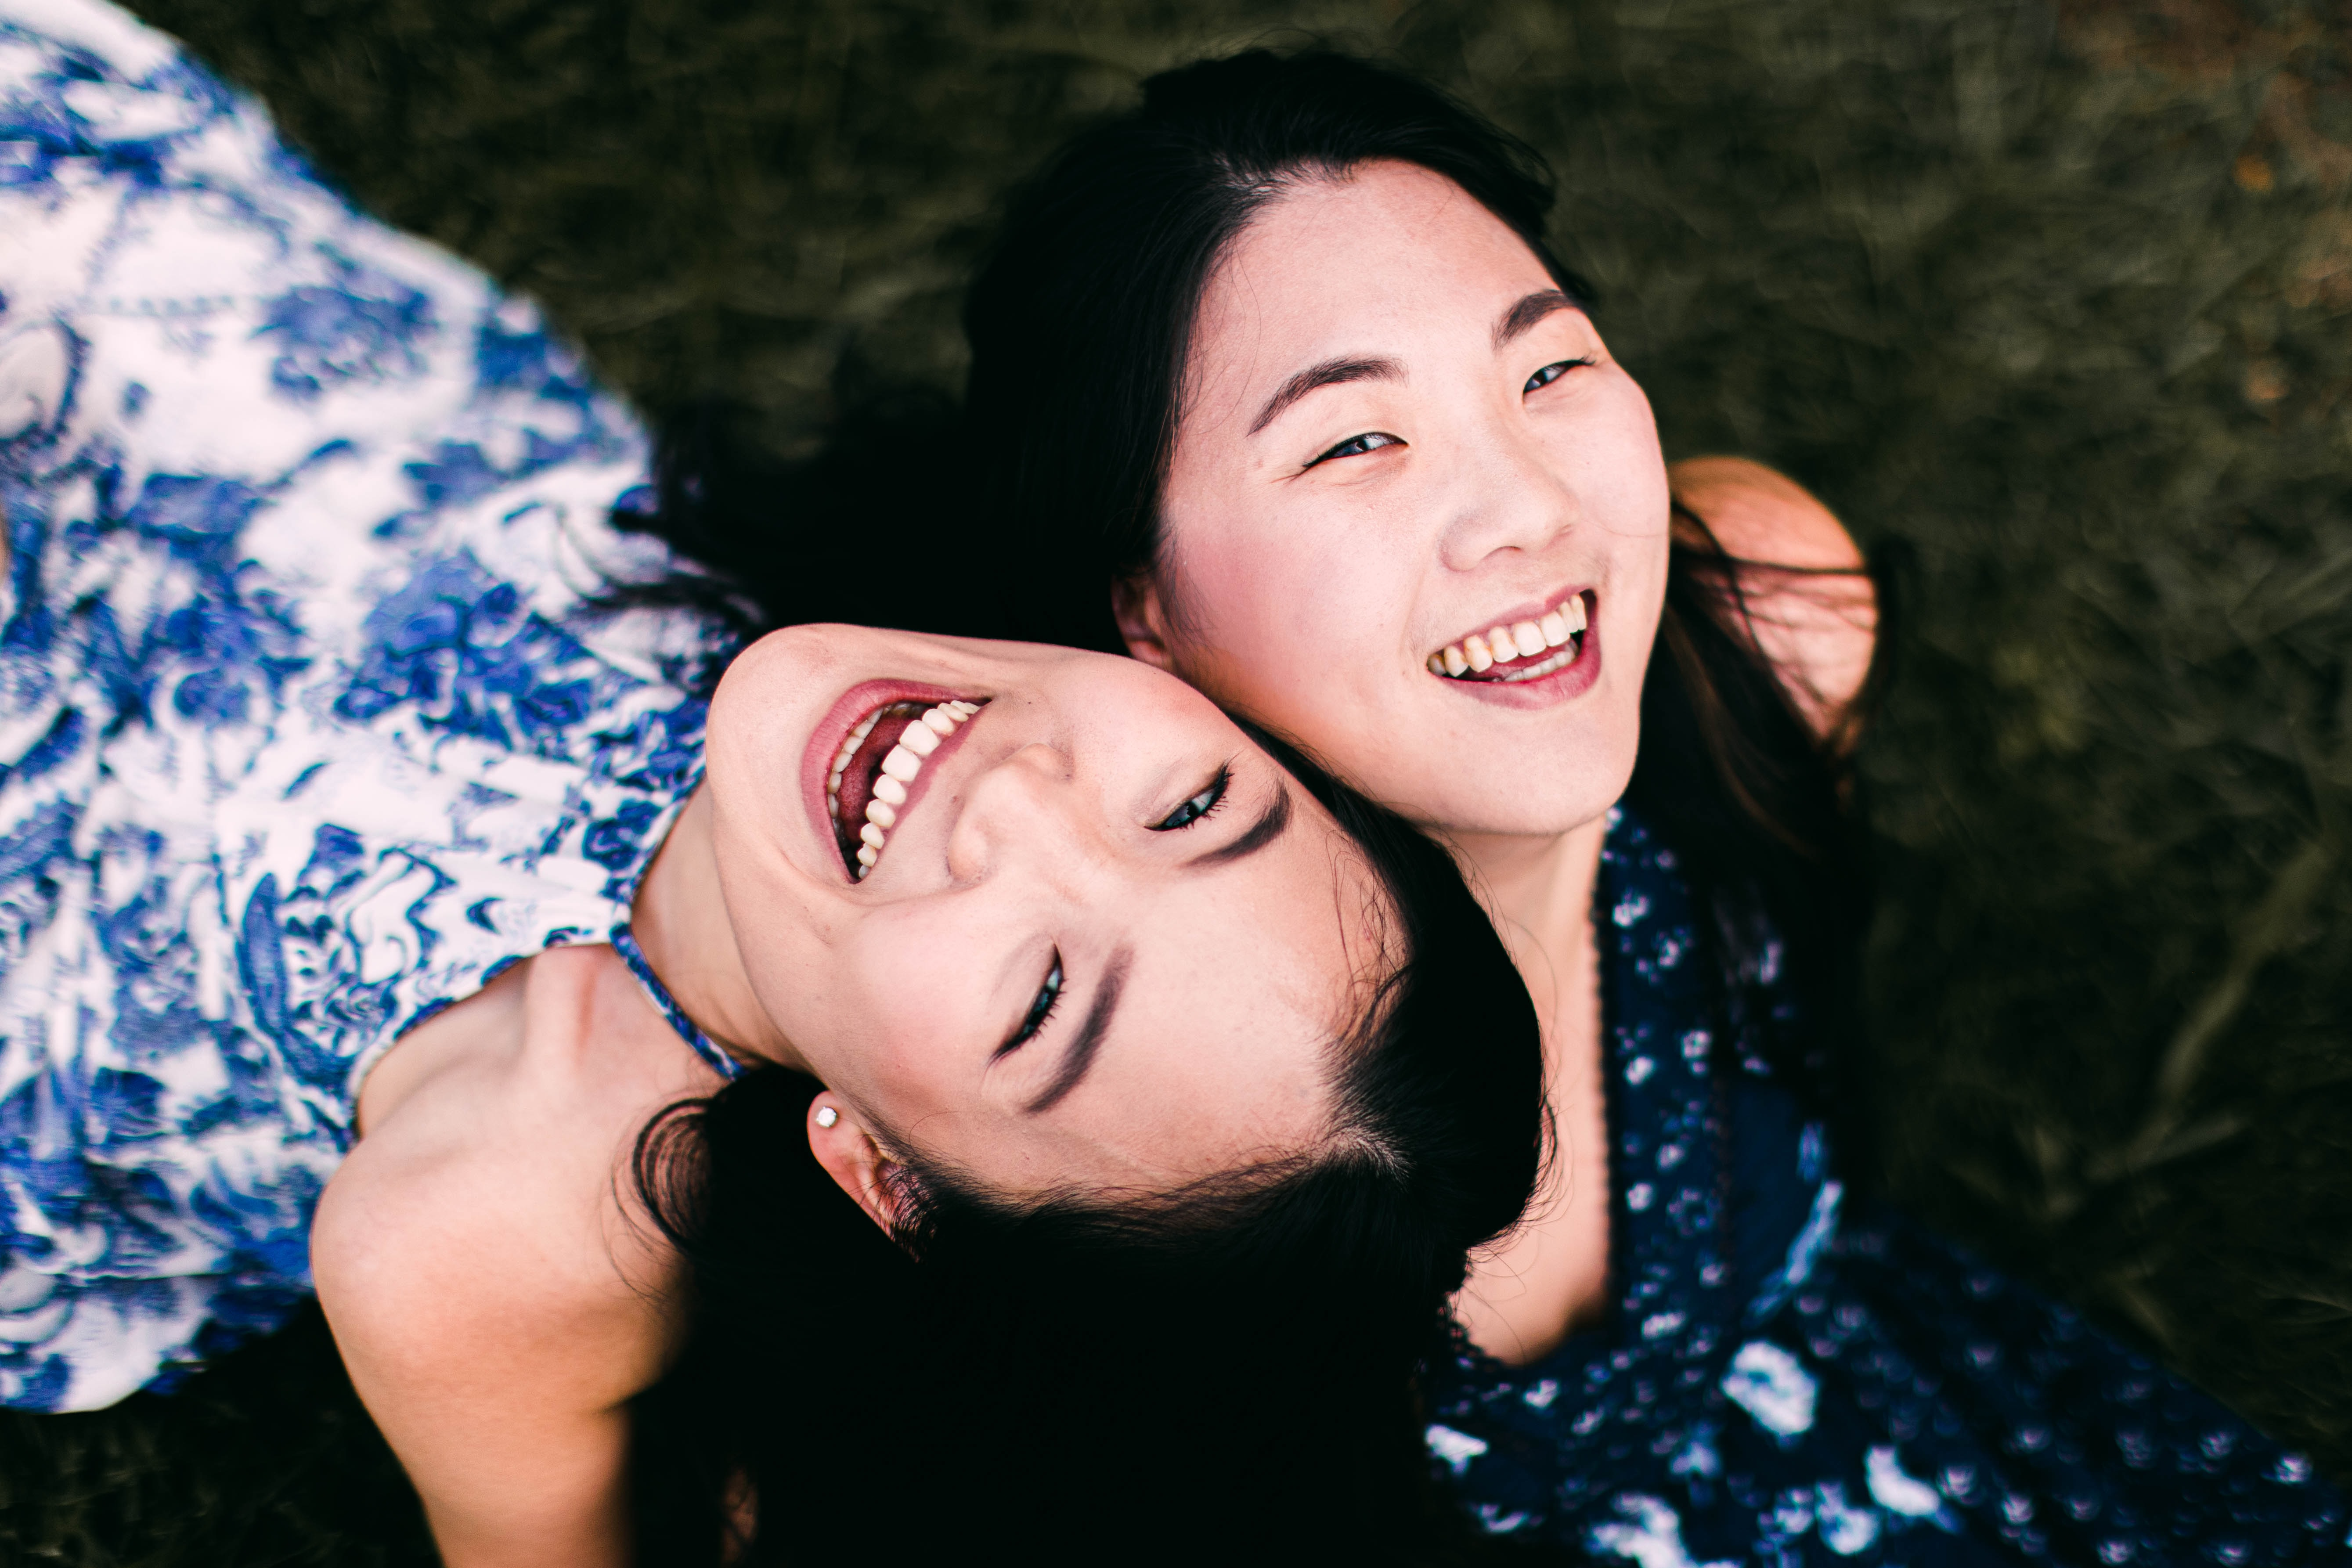 two young girls smiling and laughing